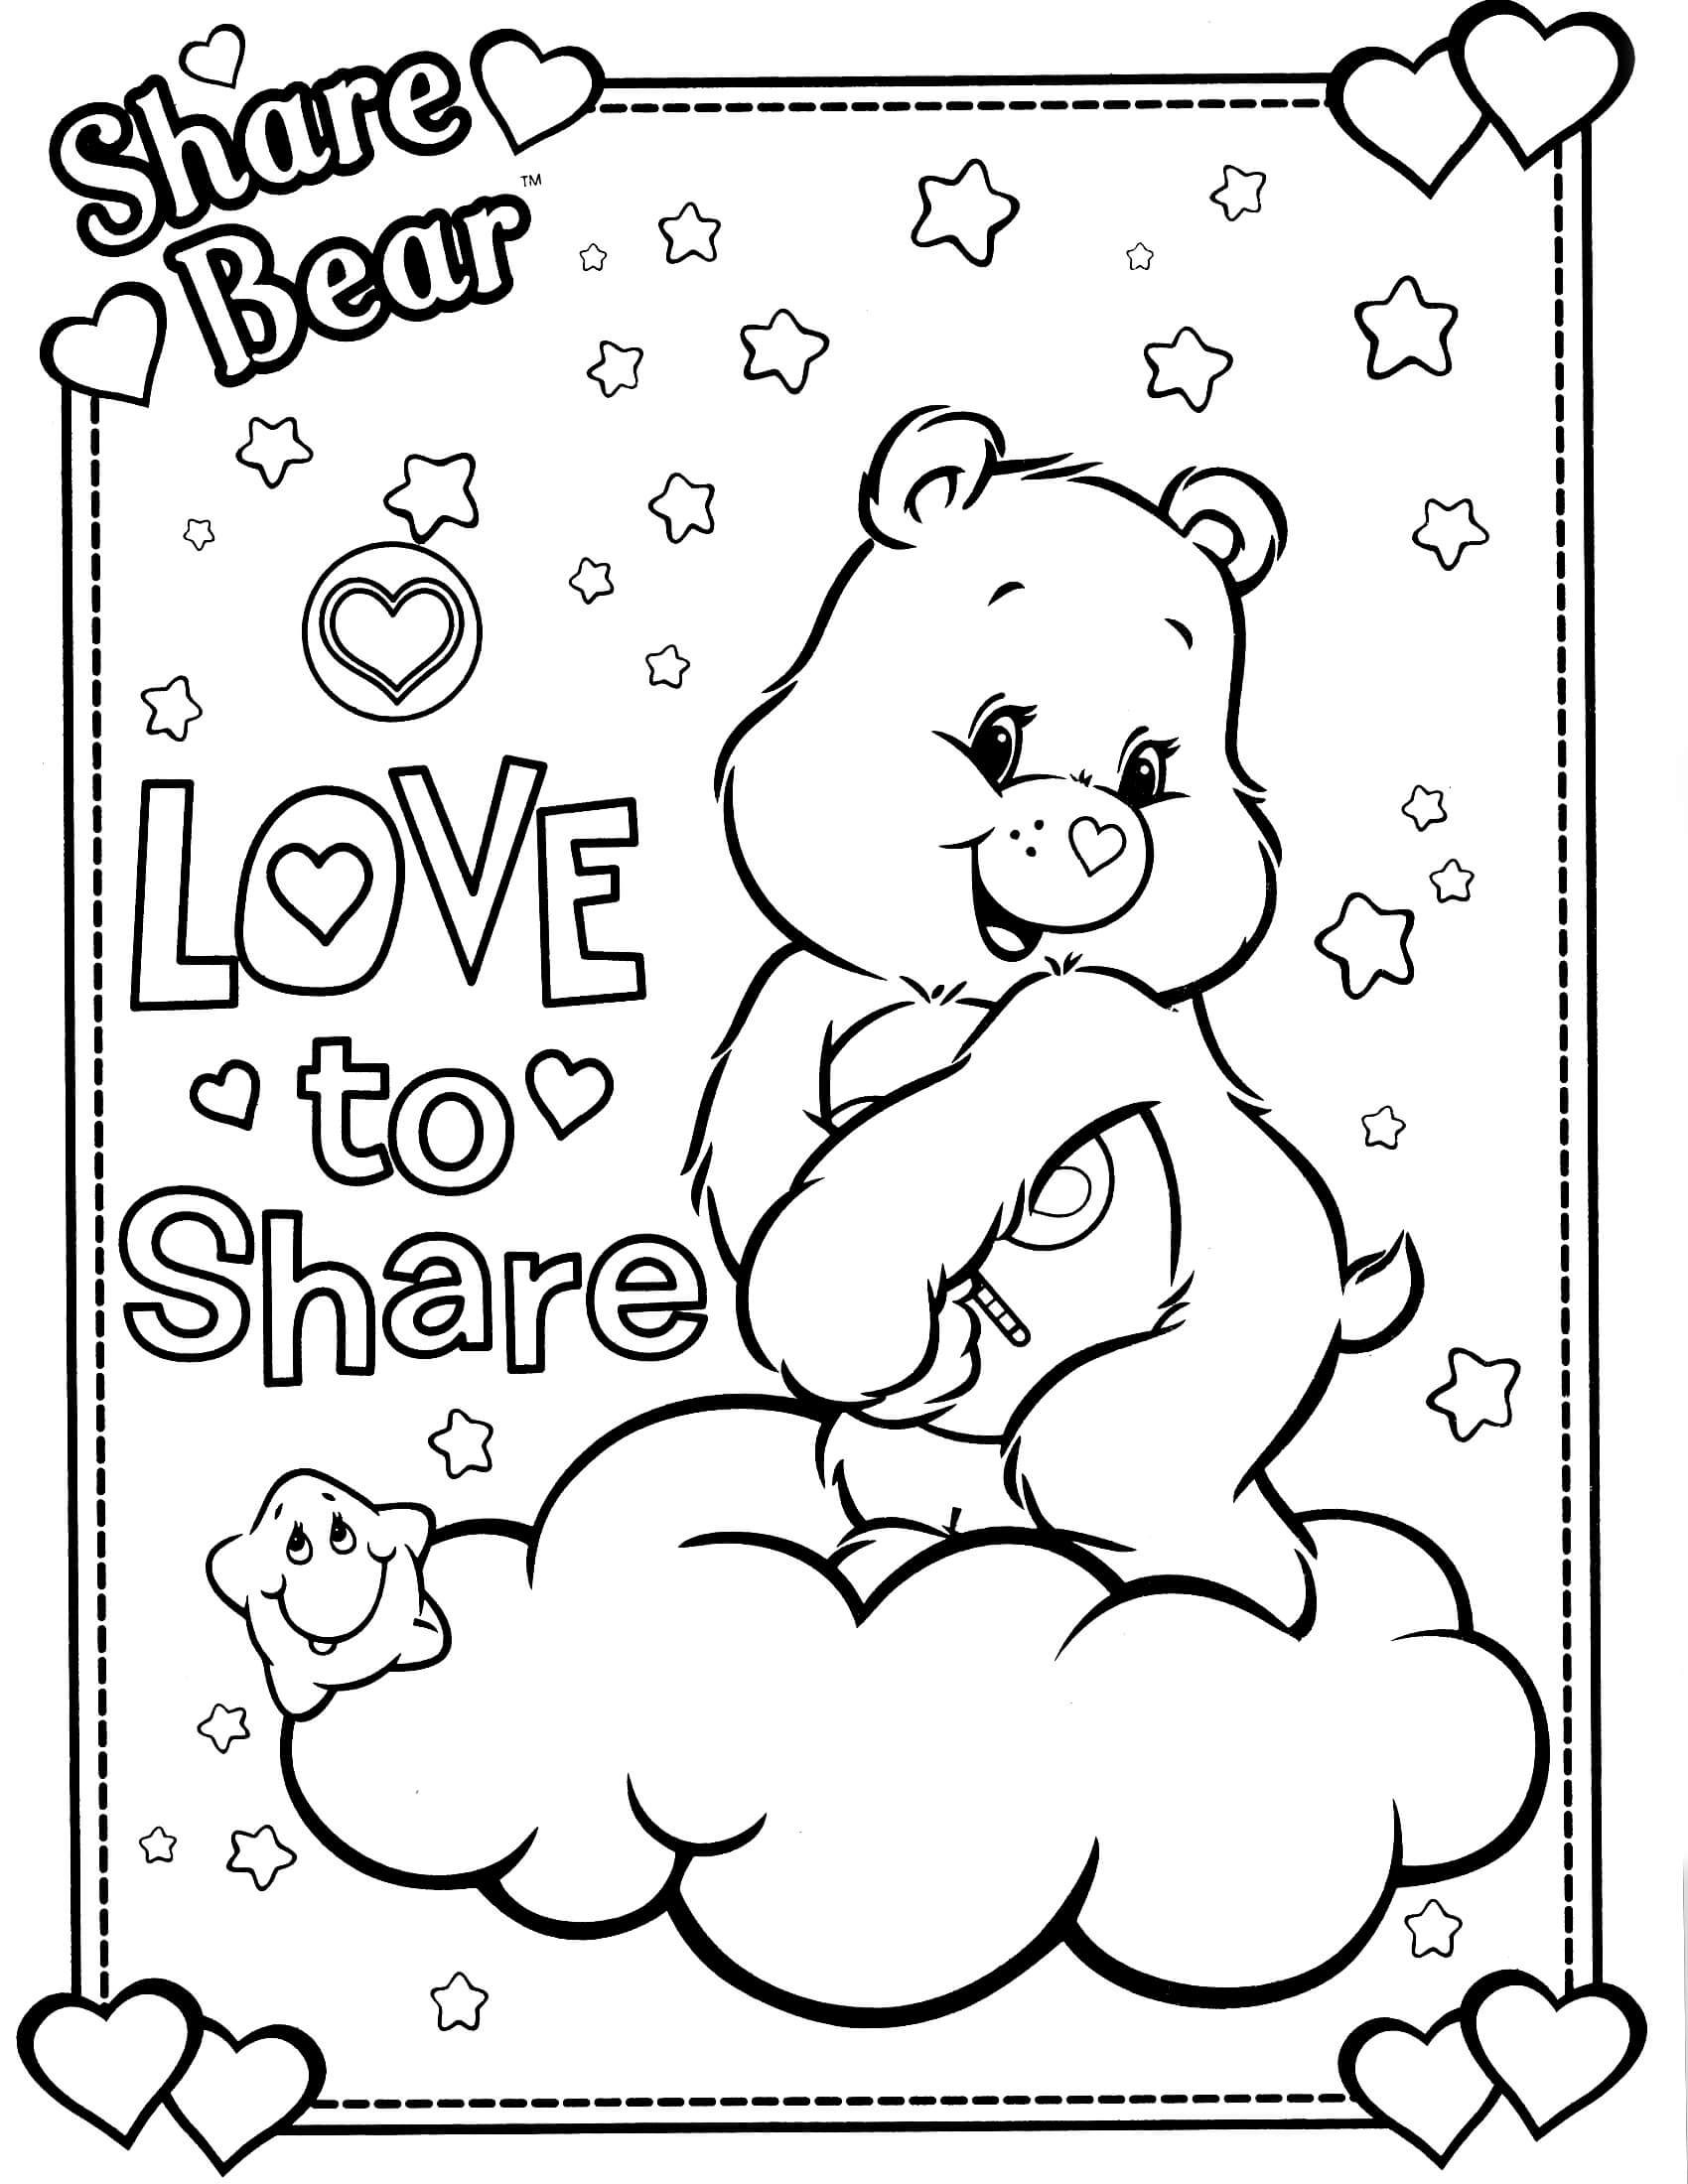 Share Bear 2 Bear Coloring Pages Coloring Books Coloring Pages